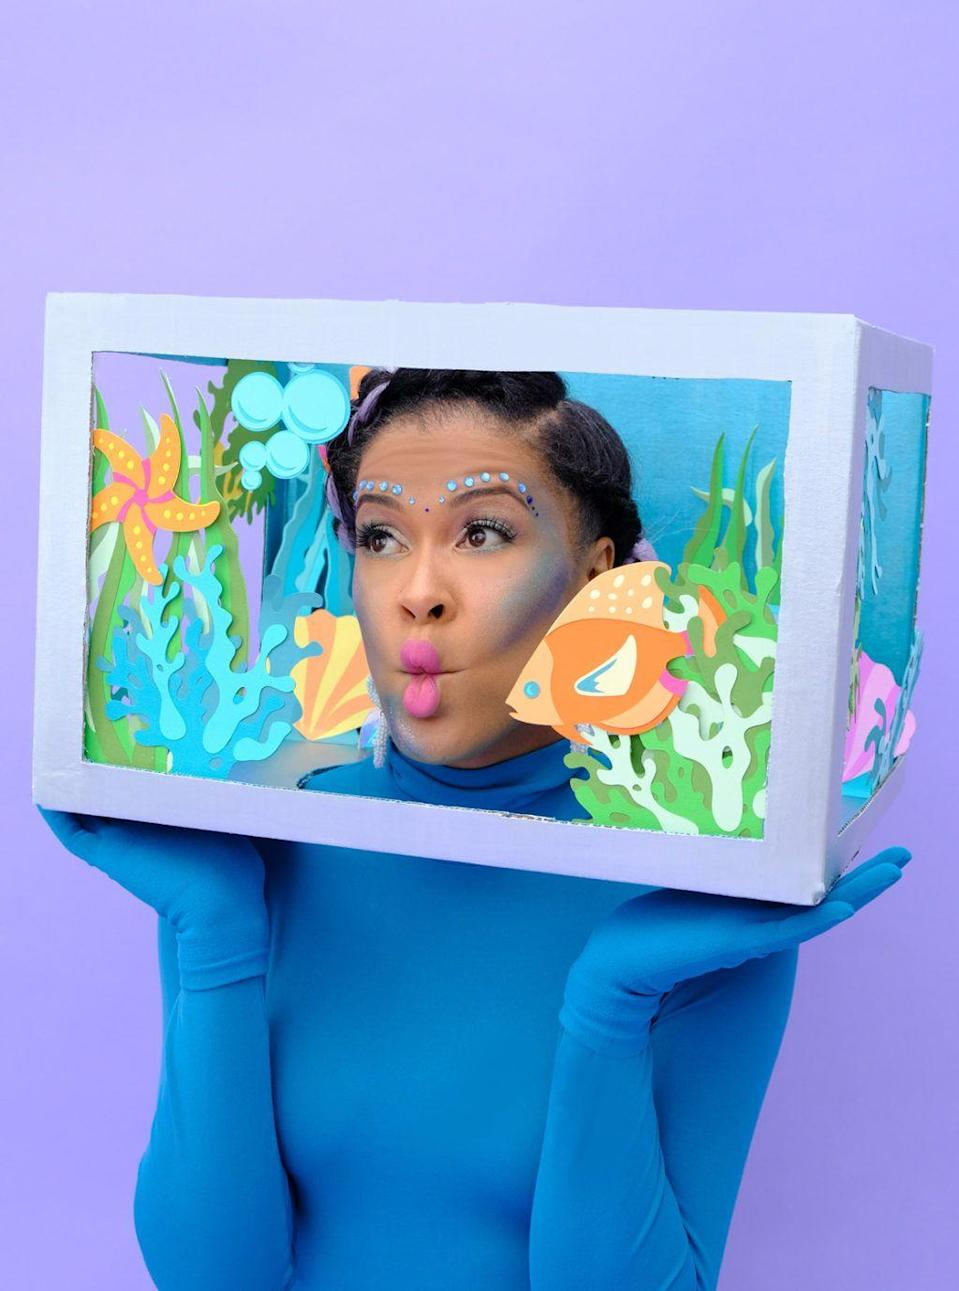 """<p>Amber Kemp-Gerstel shows you how to make an aquarium costume out of an old Amazon Prime box, something we all have in abundance!</p><p><strong>Get the tutorial at <a href=""""https://damasklove.com/how-to-make-an-aquarium-costume/"""" rel=""""nofollow noopener"""" target=""""_blank"""" data-ylk=""""slk:Damask Love"""" class=""""link rapid-noclick-resp"""">Damask Love</a>.</strong></p>"""